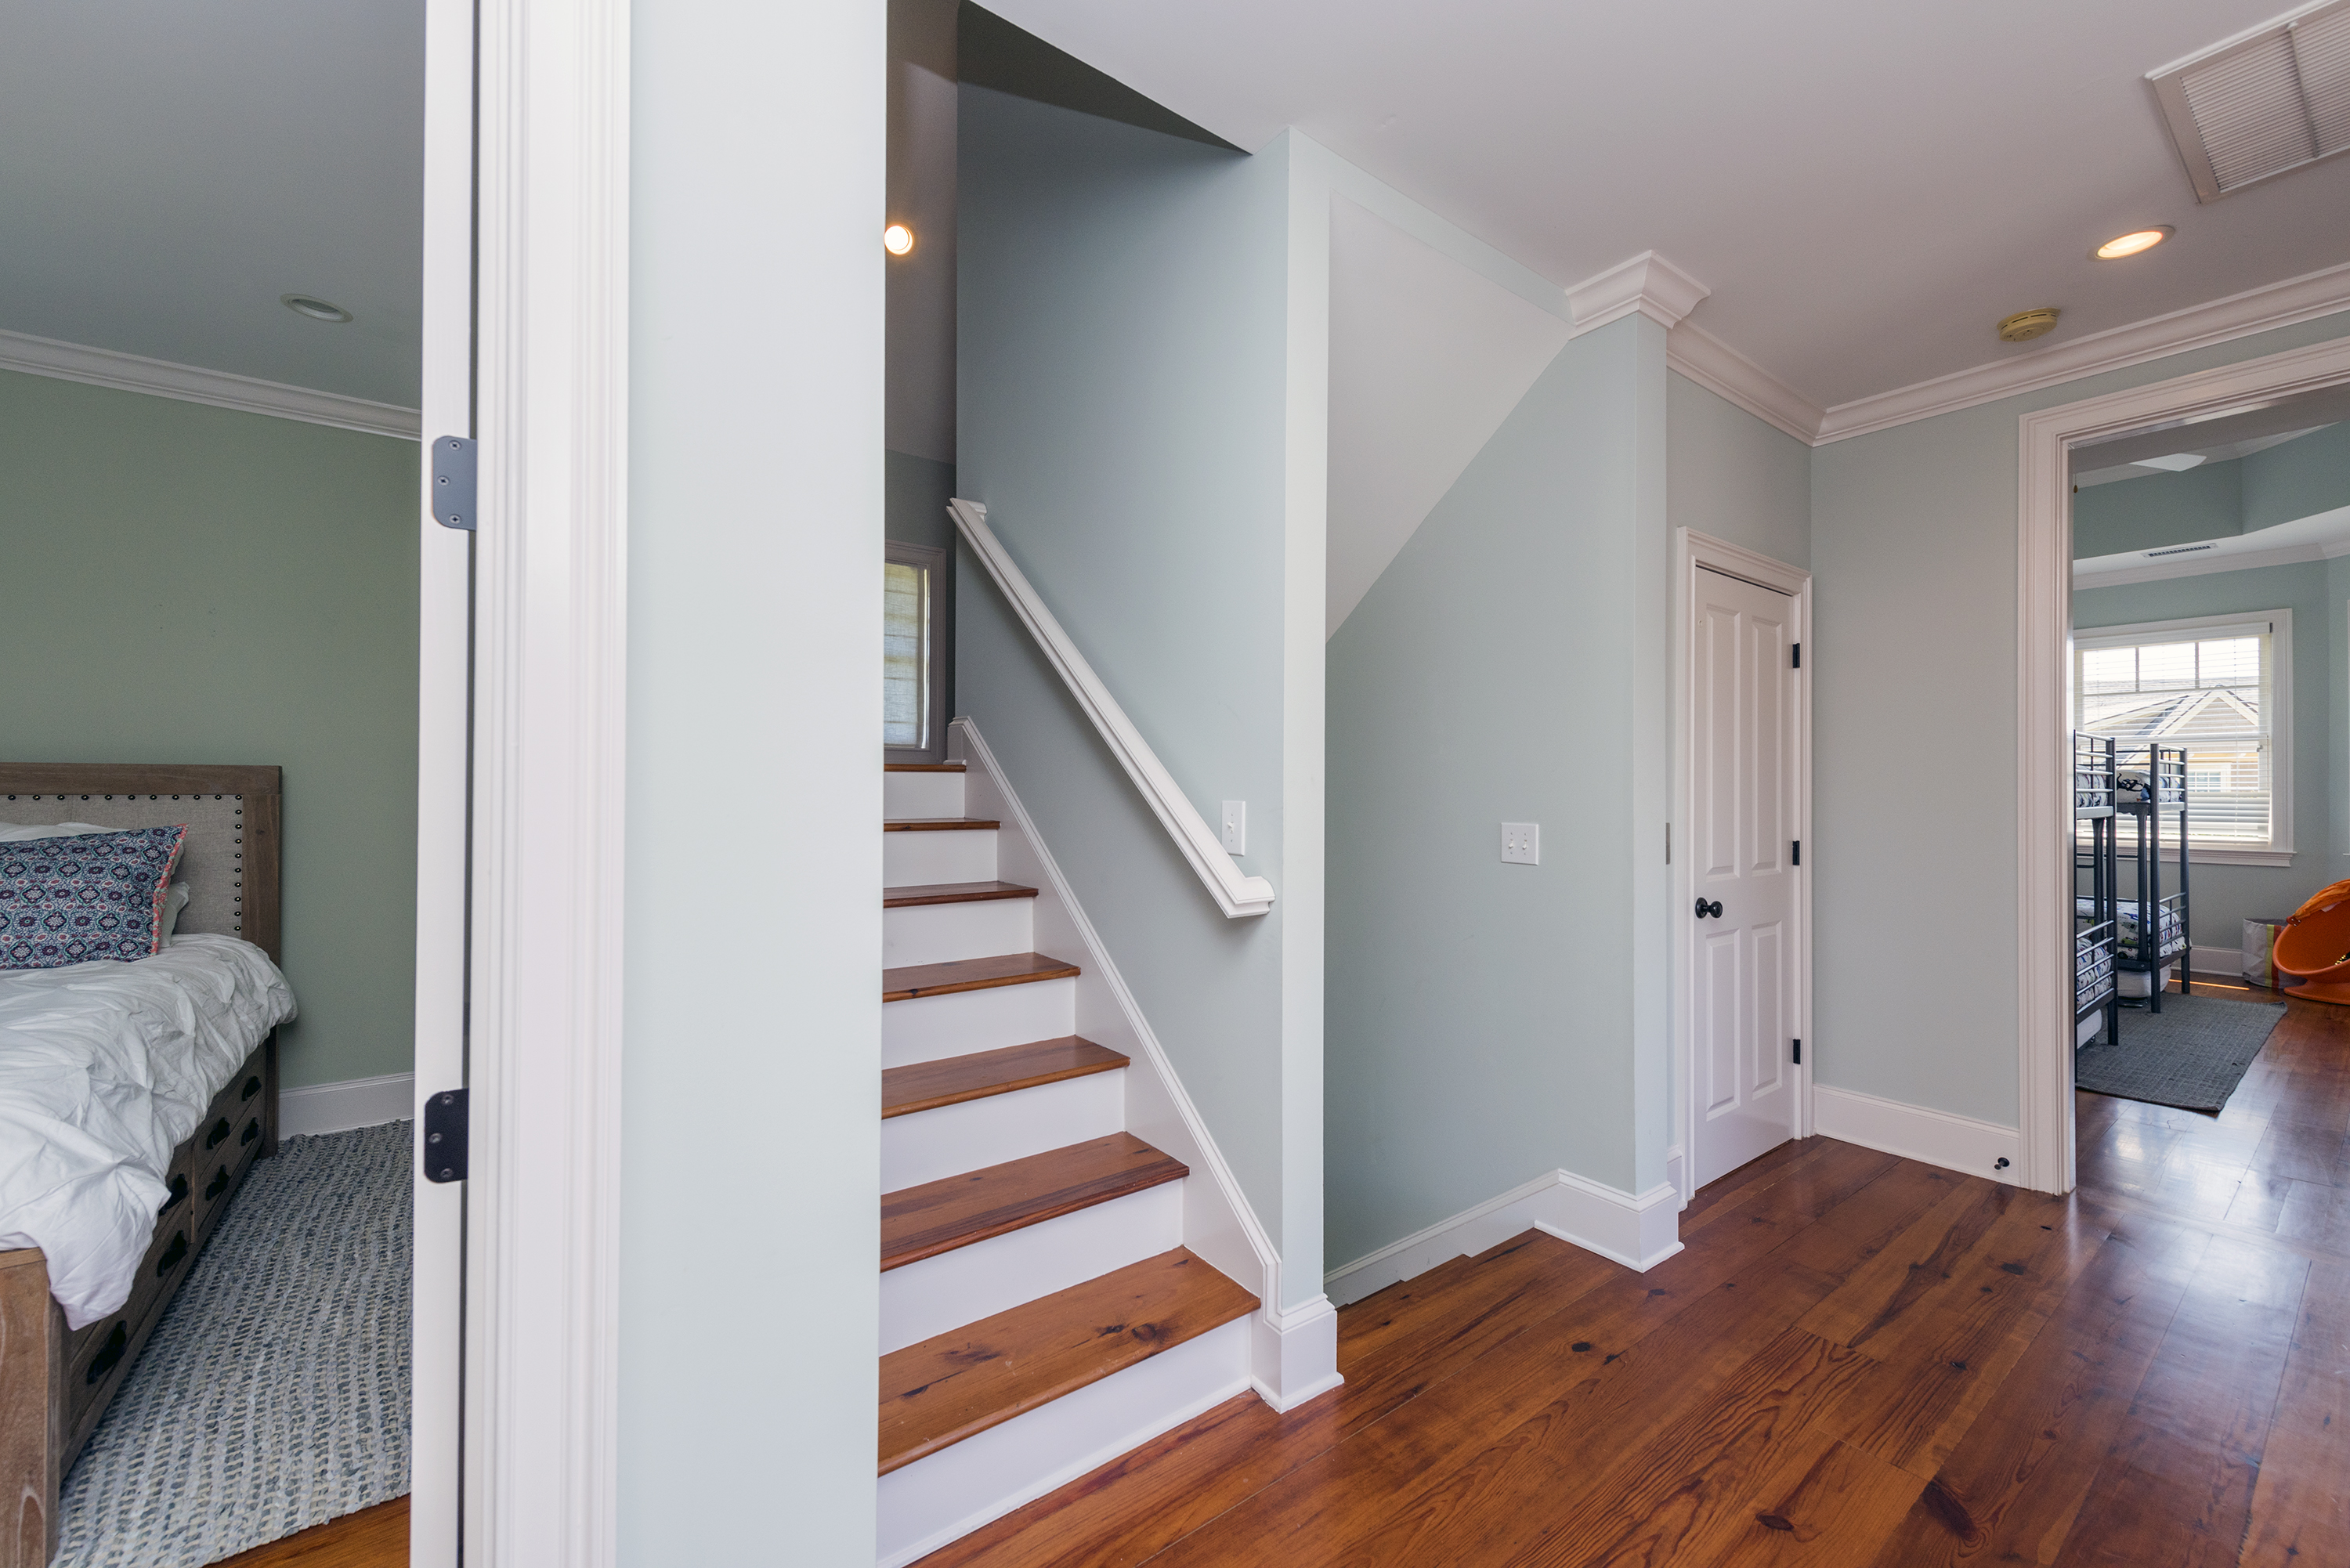 Large hallway on the top floor with steps leading to the storage attic